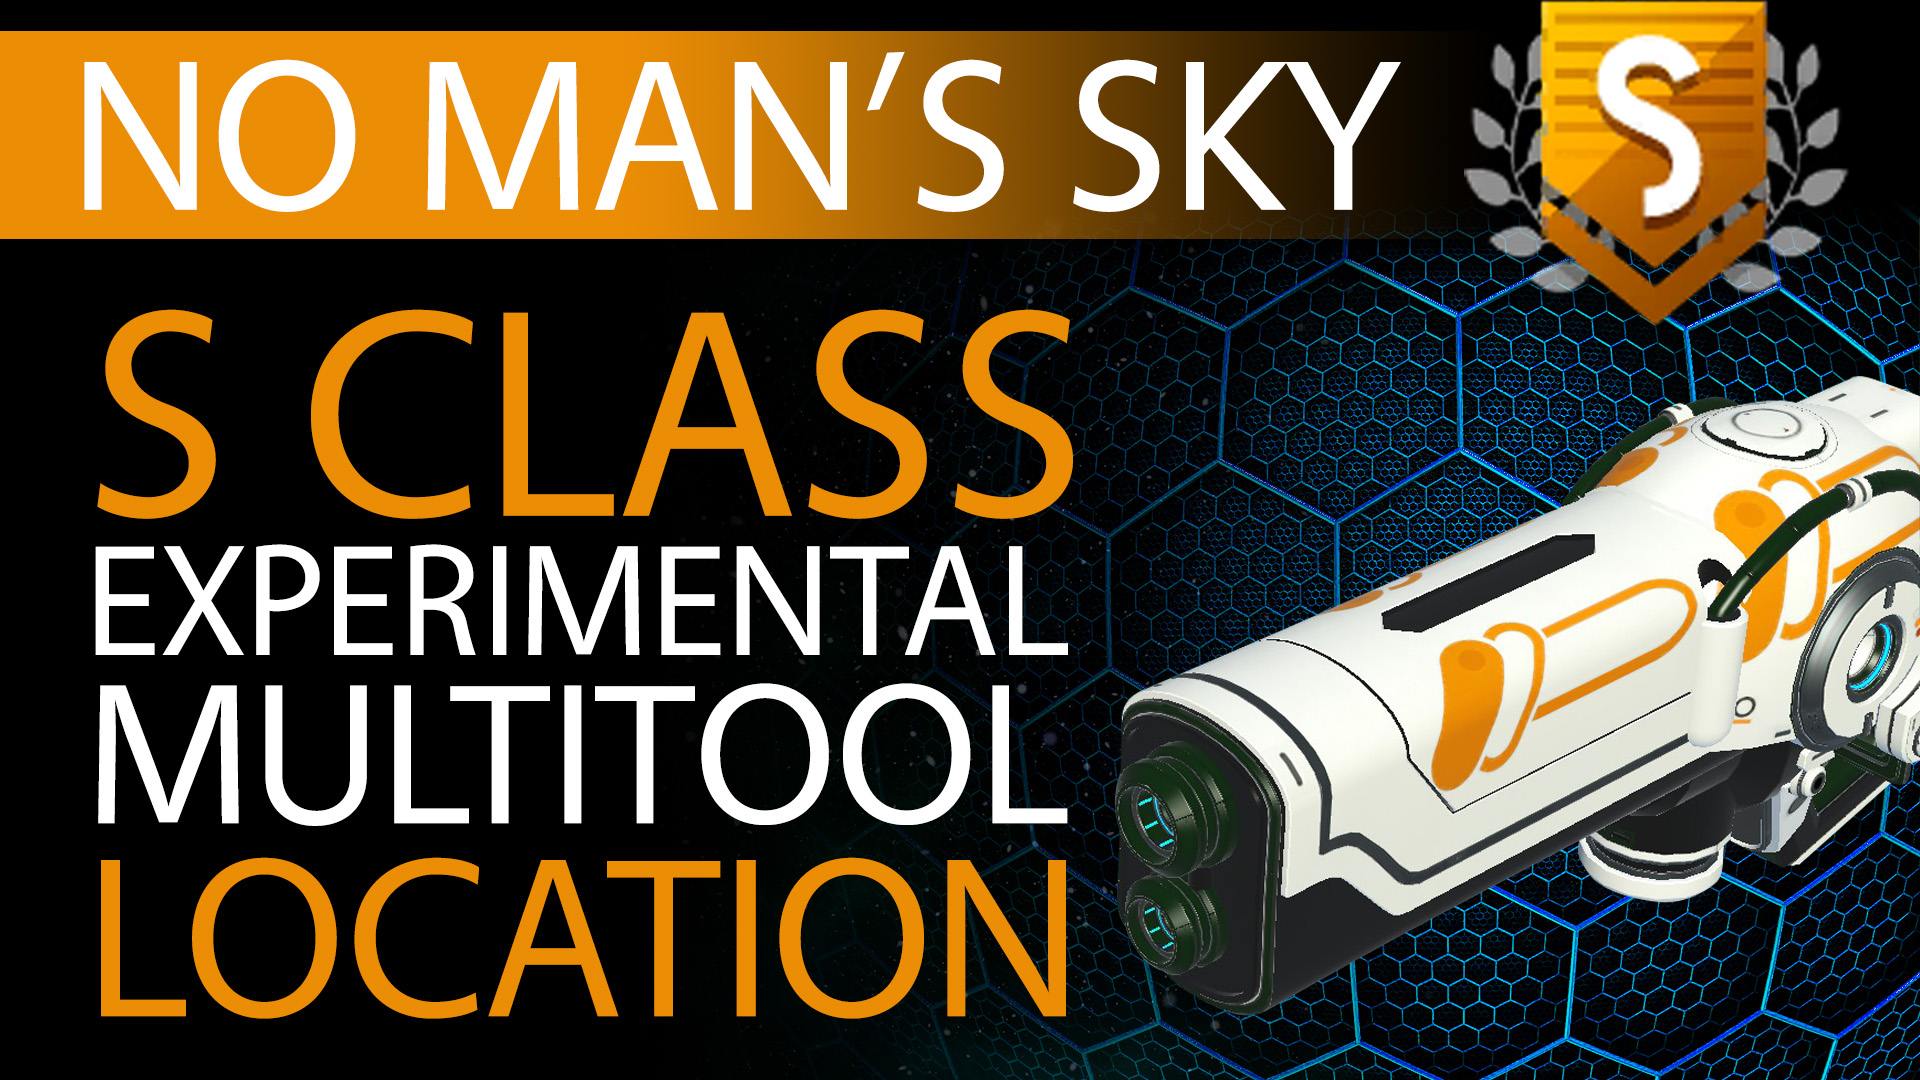 01 No Man's Sky Orange Decal S Class Experimental Multitool - Available to ALL - Xaine's World NMS Thumbnail